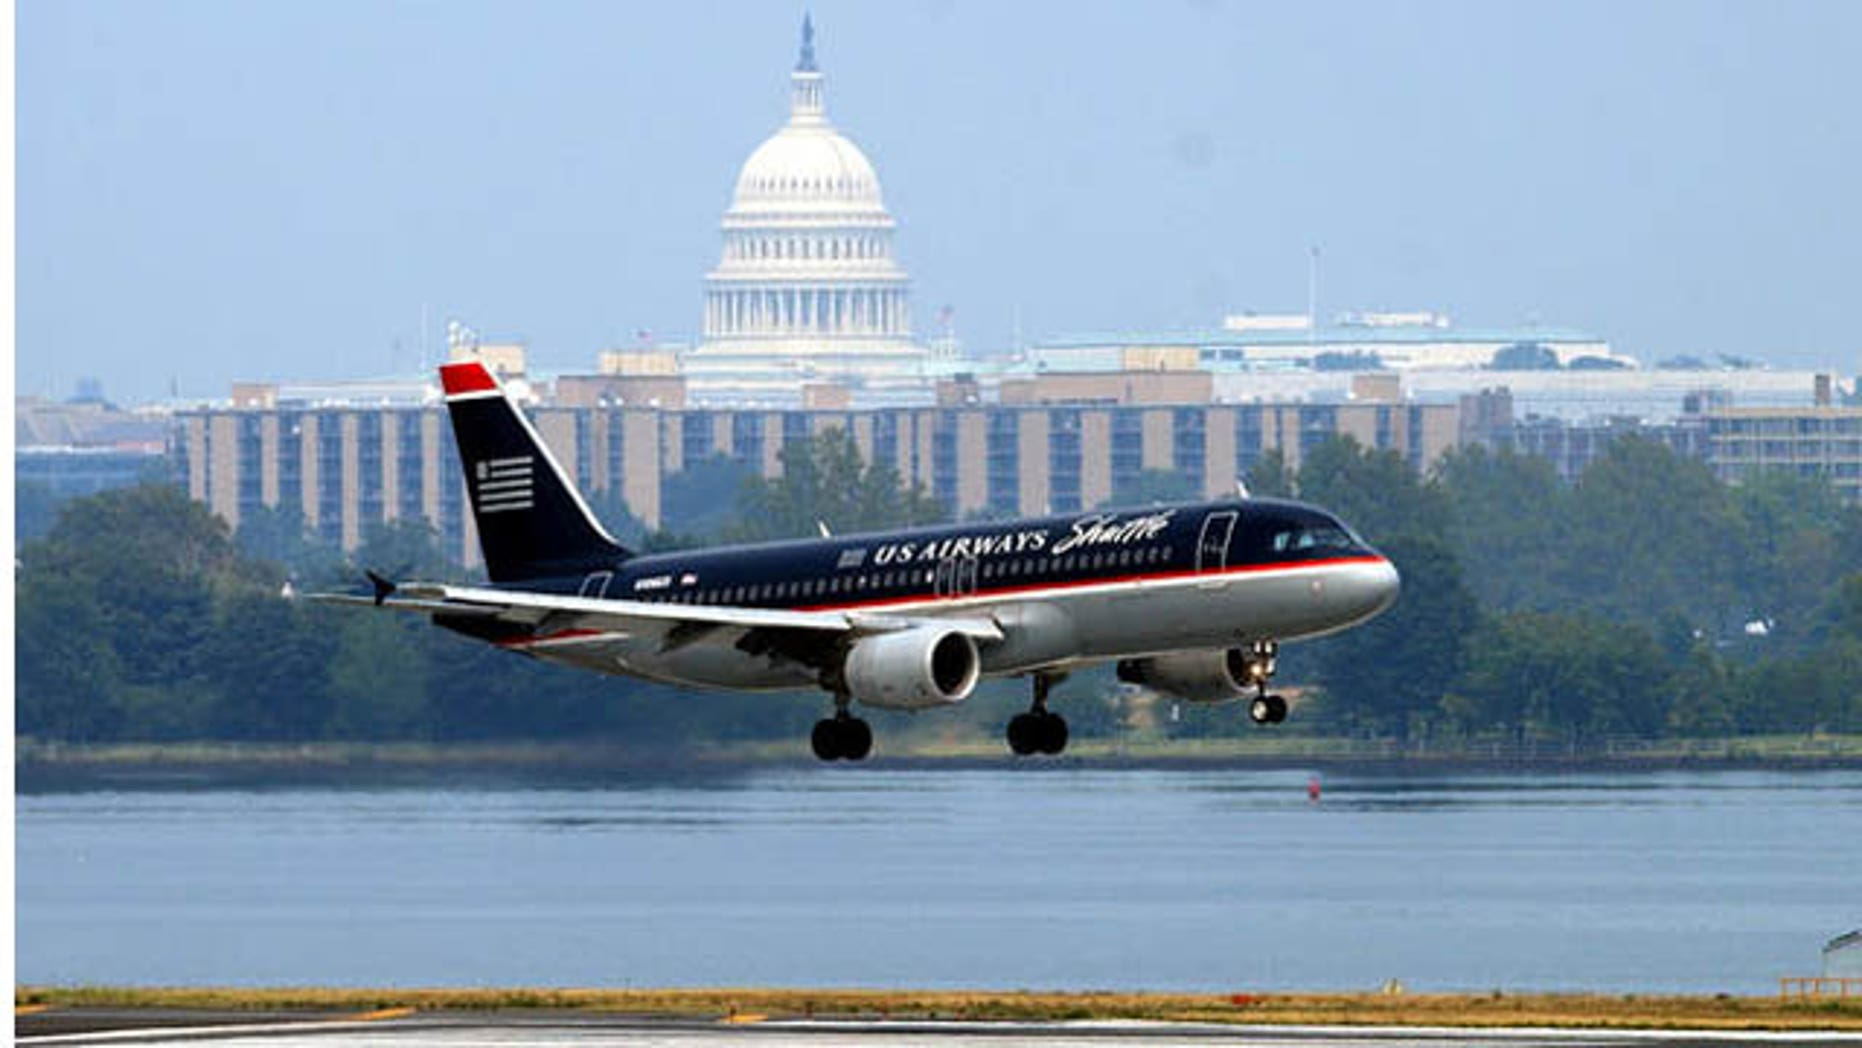 This file photo shows a U.S. Airways plane landing at Reagan National Airport.